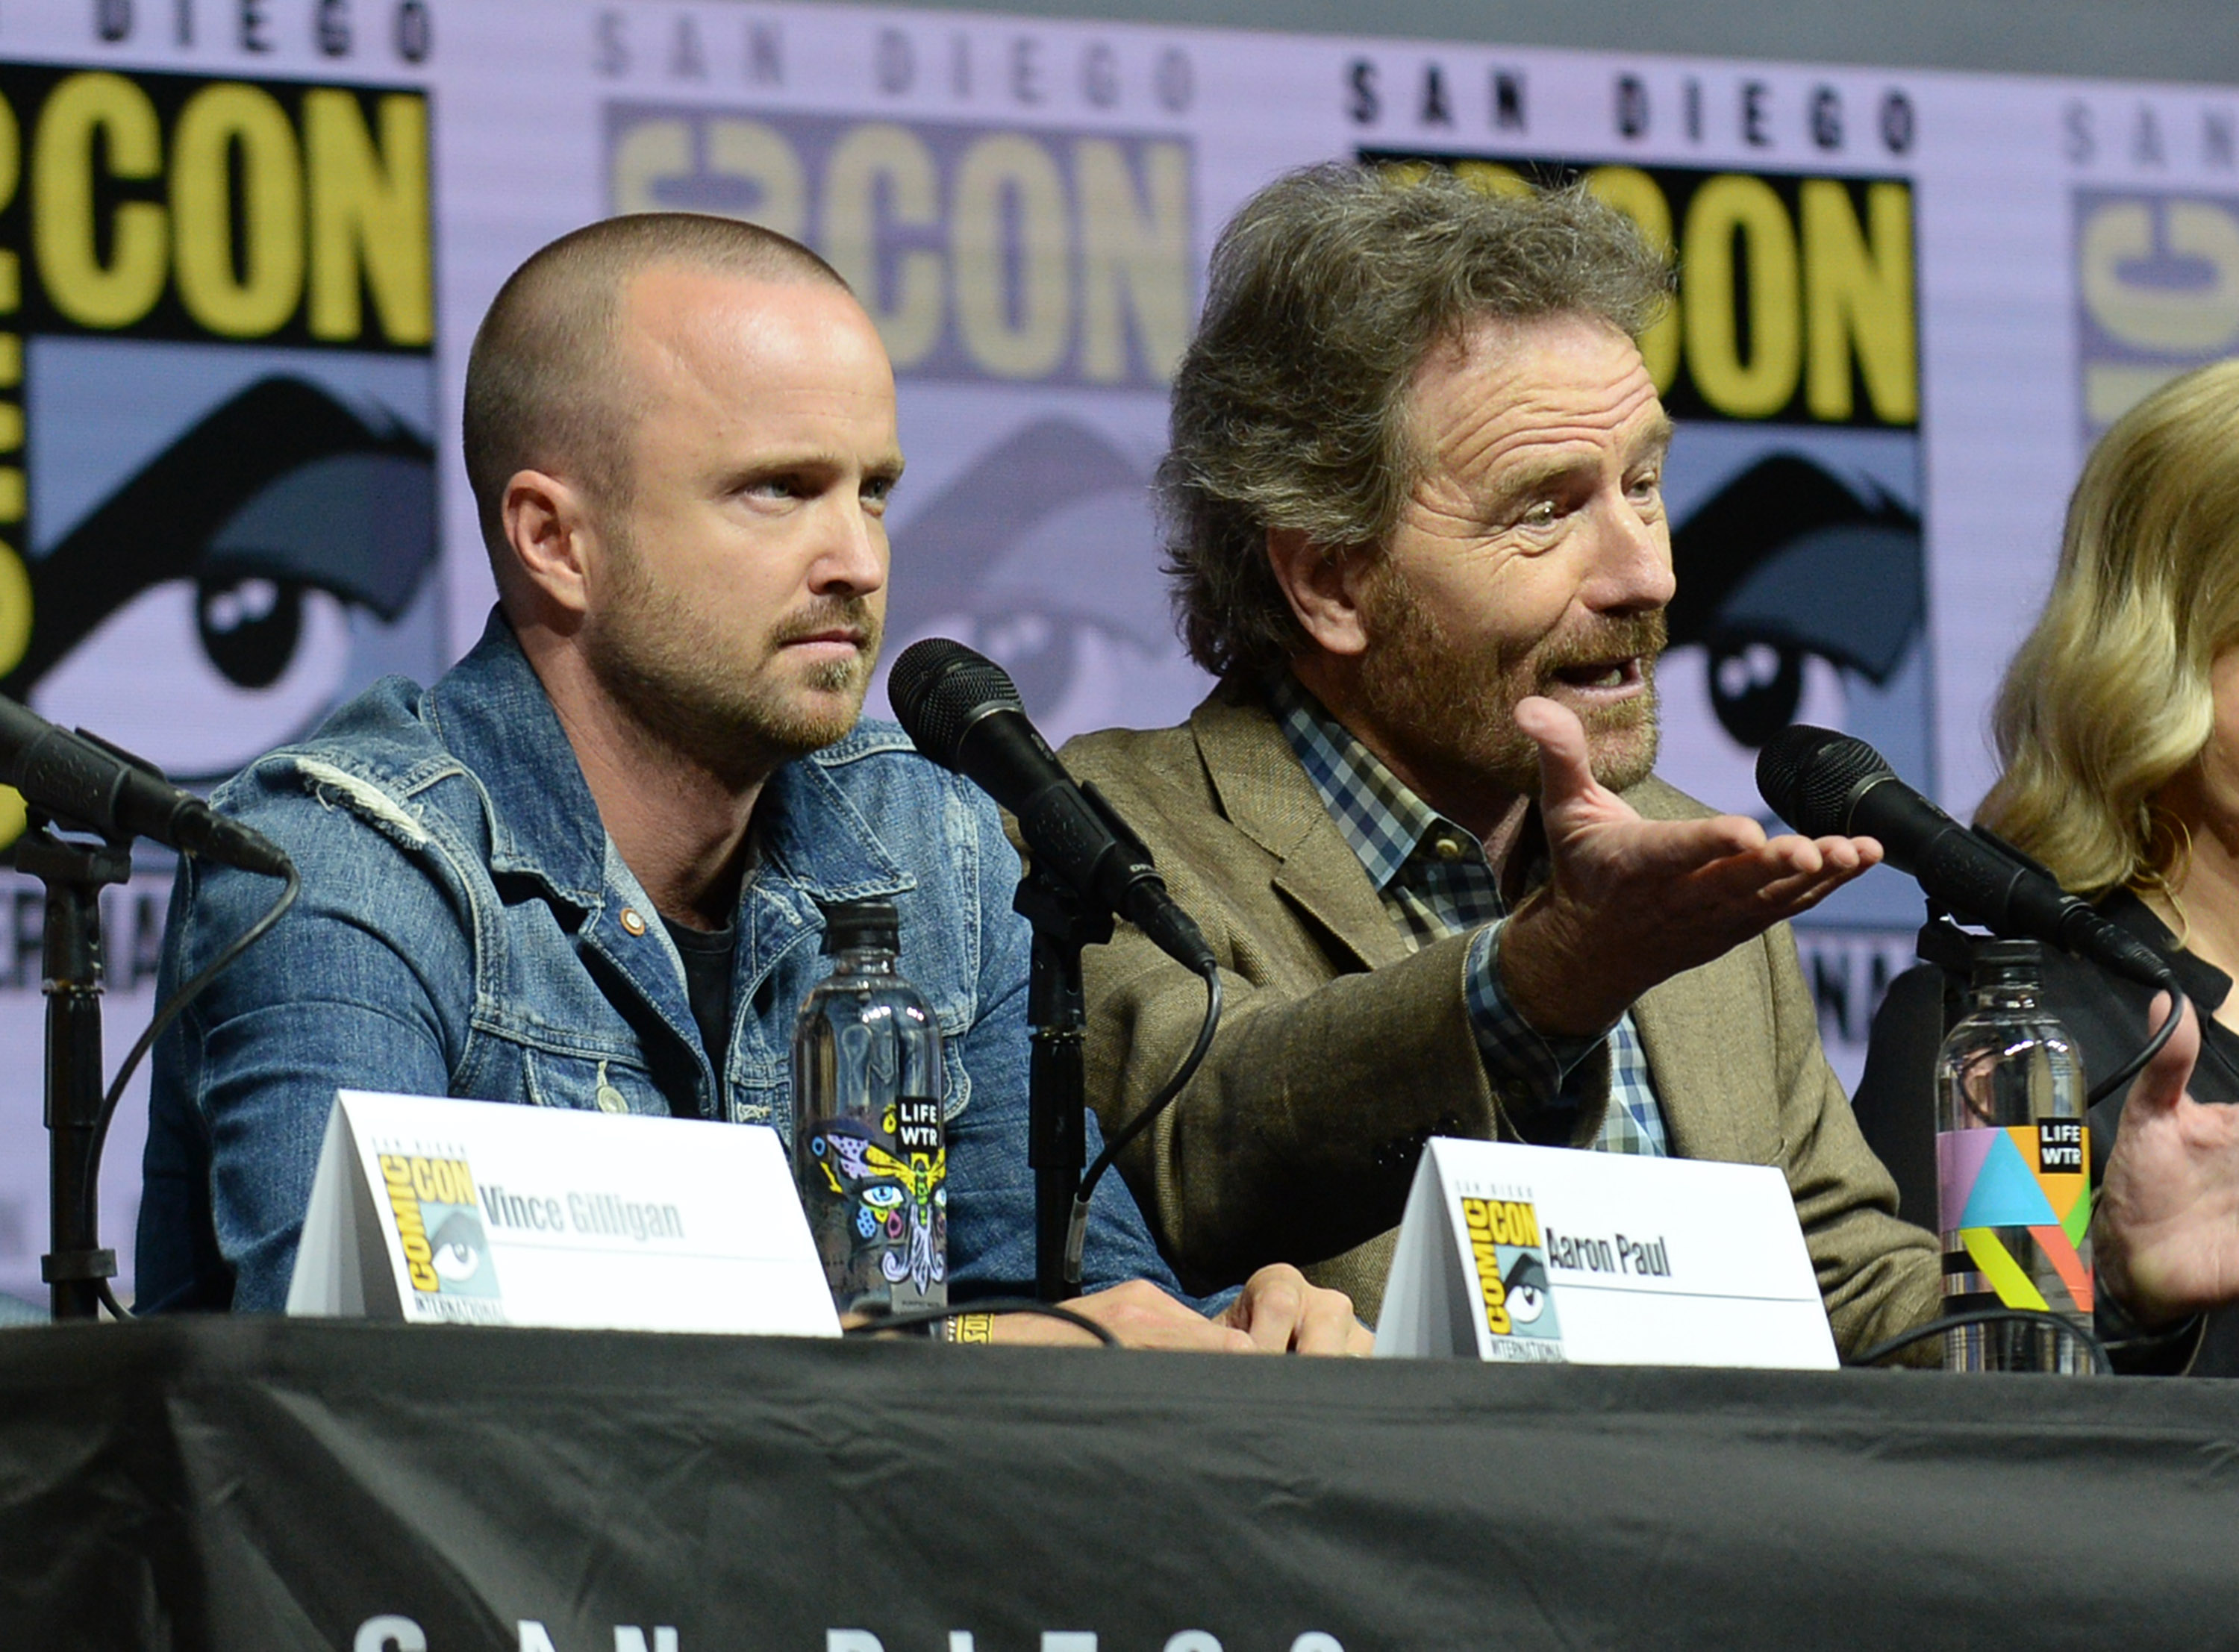 Aaron Paul and Bryan Cranston'Breaking Bad' TV show panel, Comic-Con International, San Diego, USA - 19 Jul 2018 2018 Comic-Con International: San Diego Day1- 'Breaking Bad' 10th Anniversary